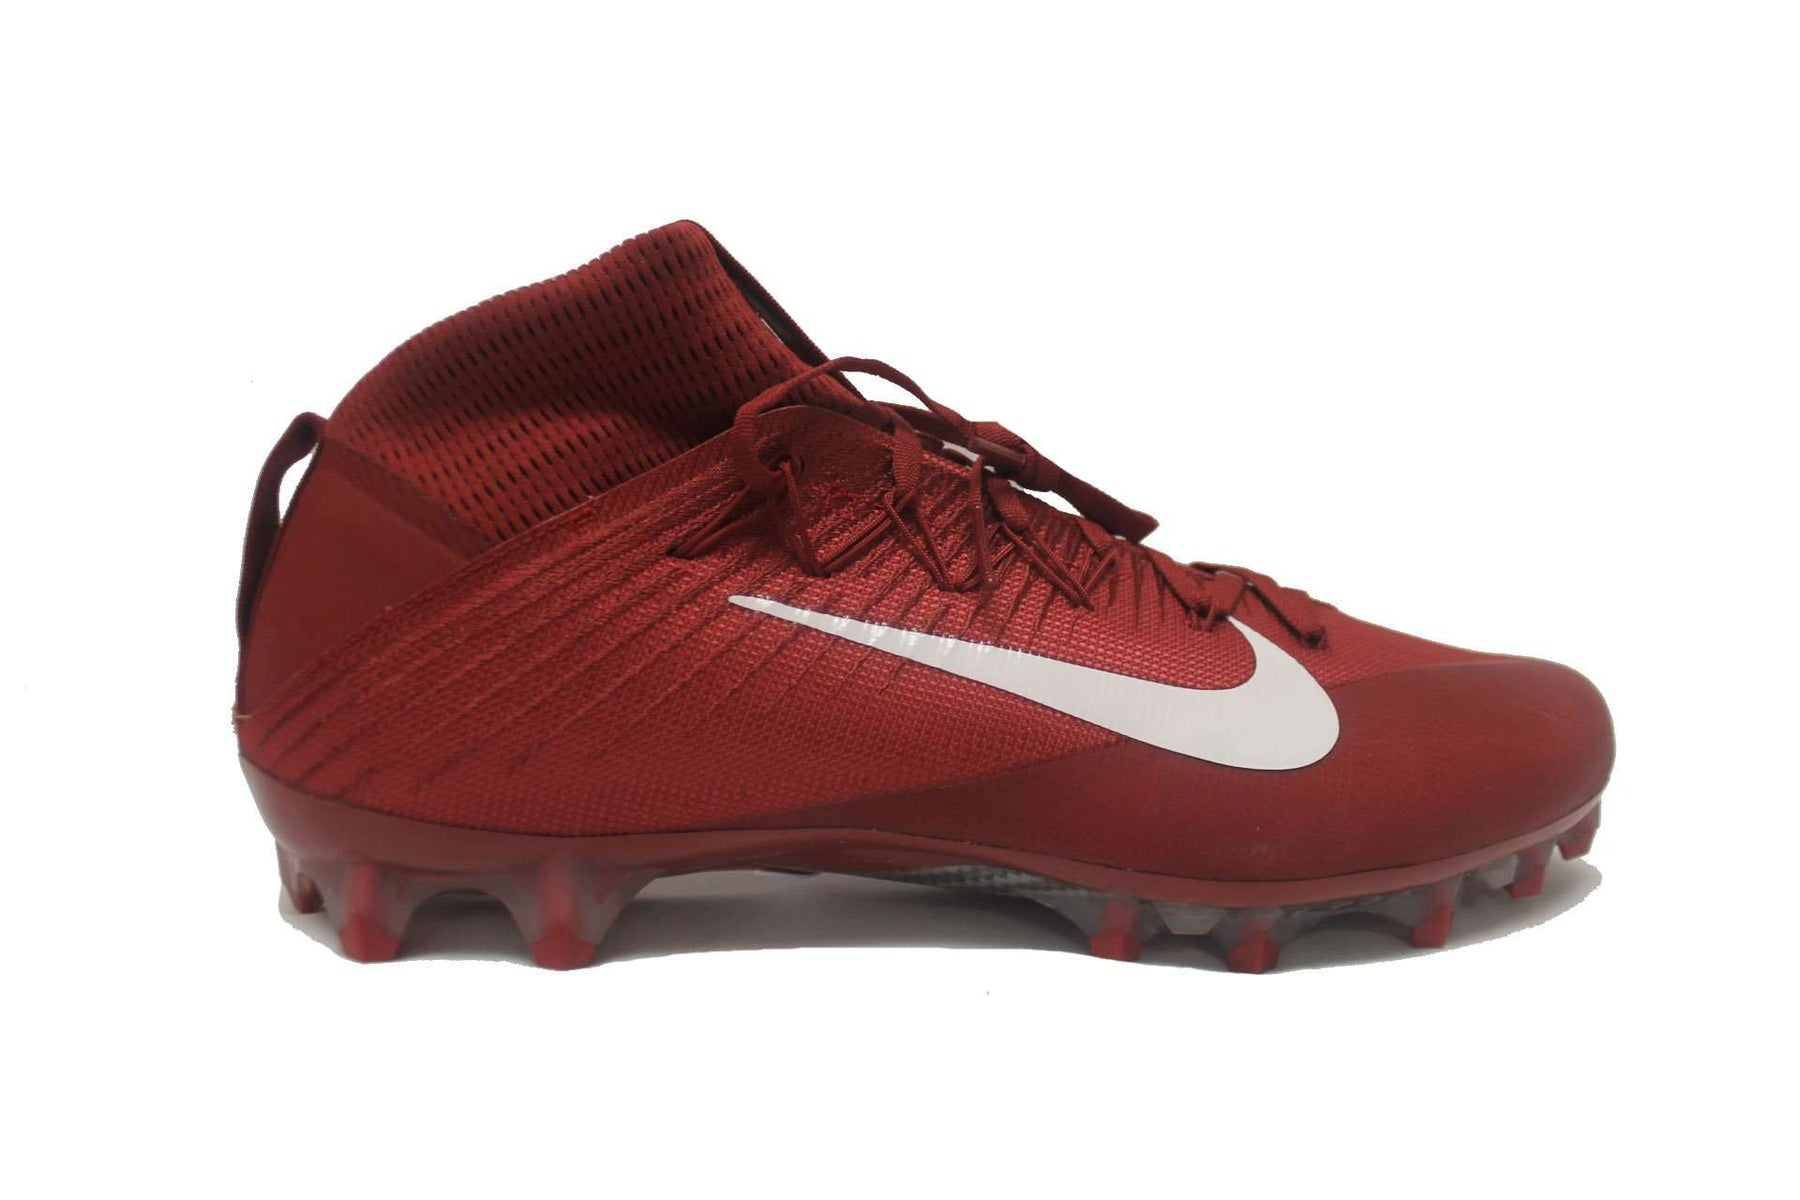 f2c2f5f6ca80 ... Nike Vapor Untouchable 2 CF Football Cleats - League Outfitters ...